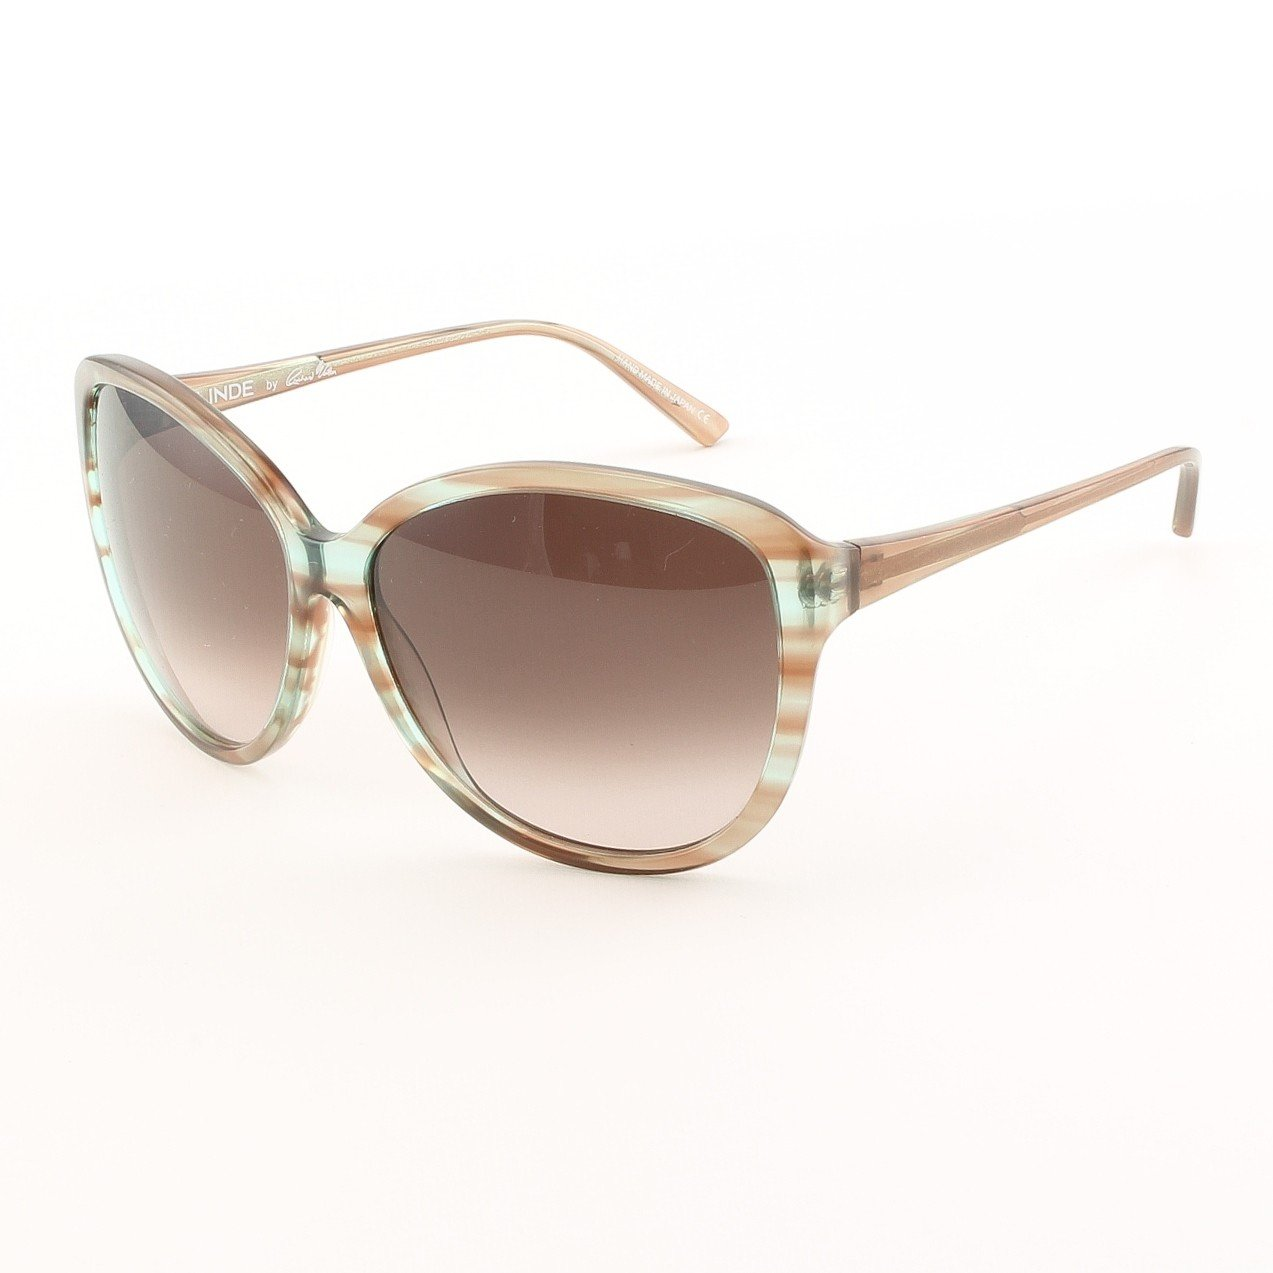 Blinde Like Totally Women's Sunglasses Col. Blue Crystal Tortoise with Purple Gradient Lenses